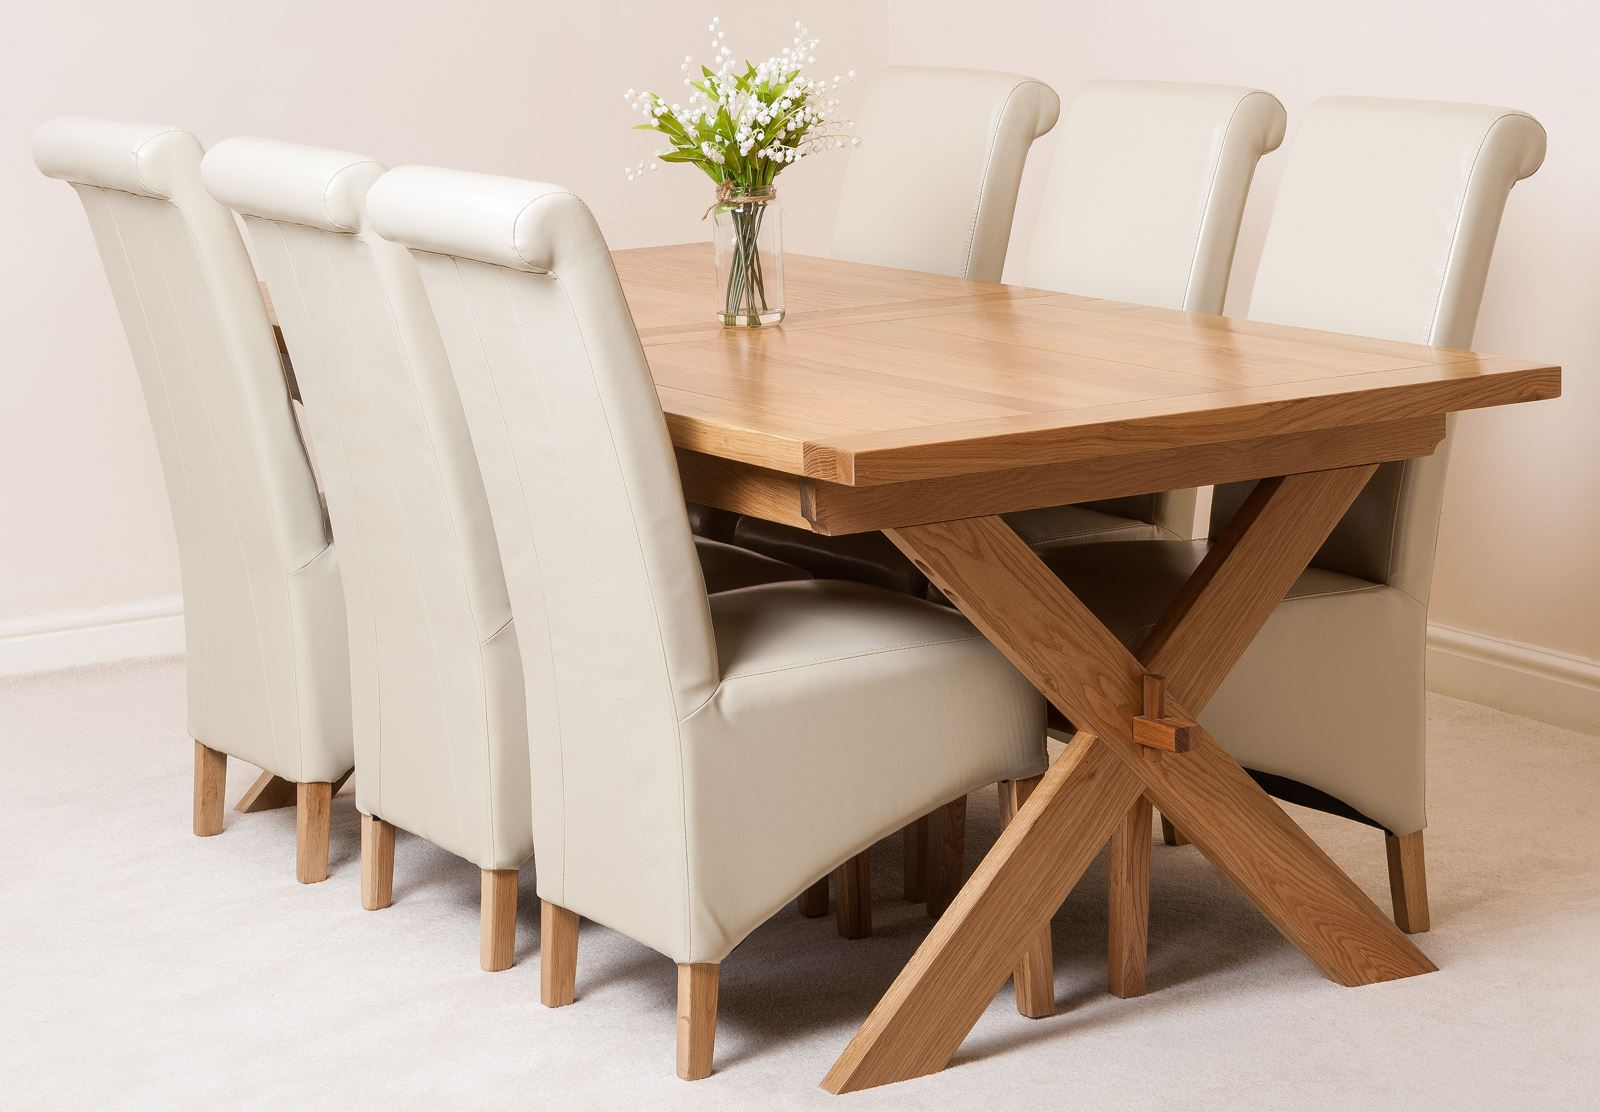 ivory dining chairs uk vinyl posture task chair vermont solid oak extending room table and 6